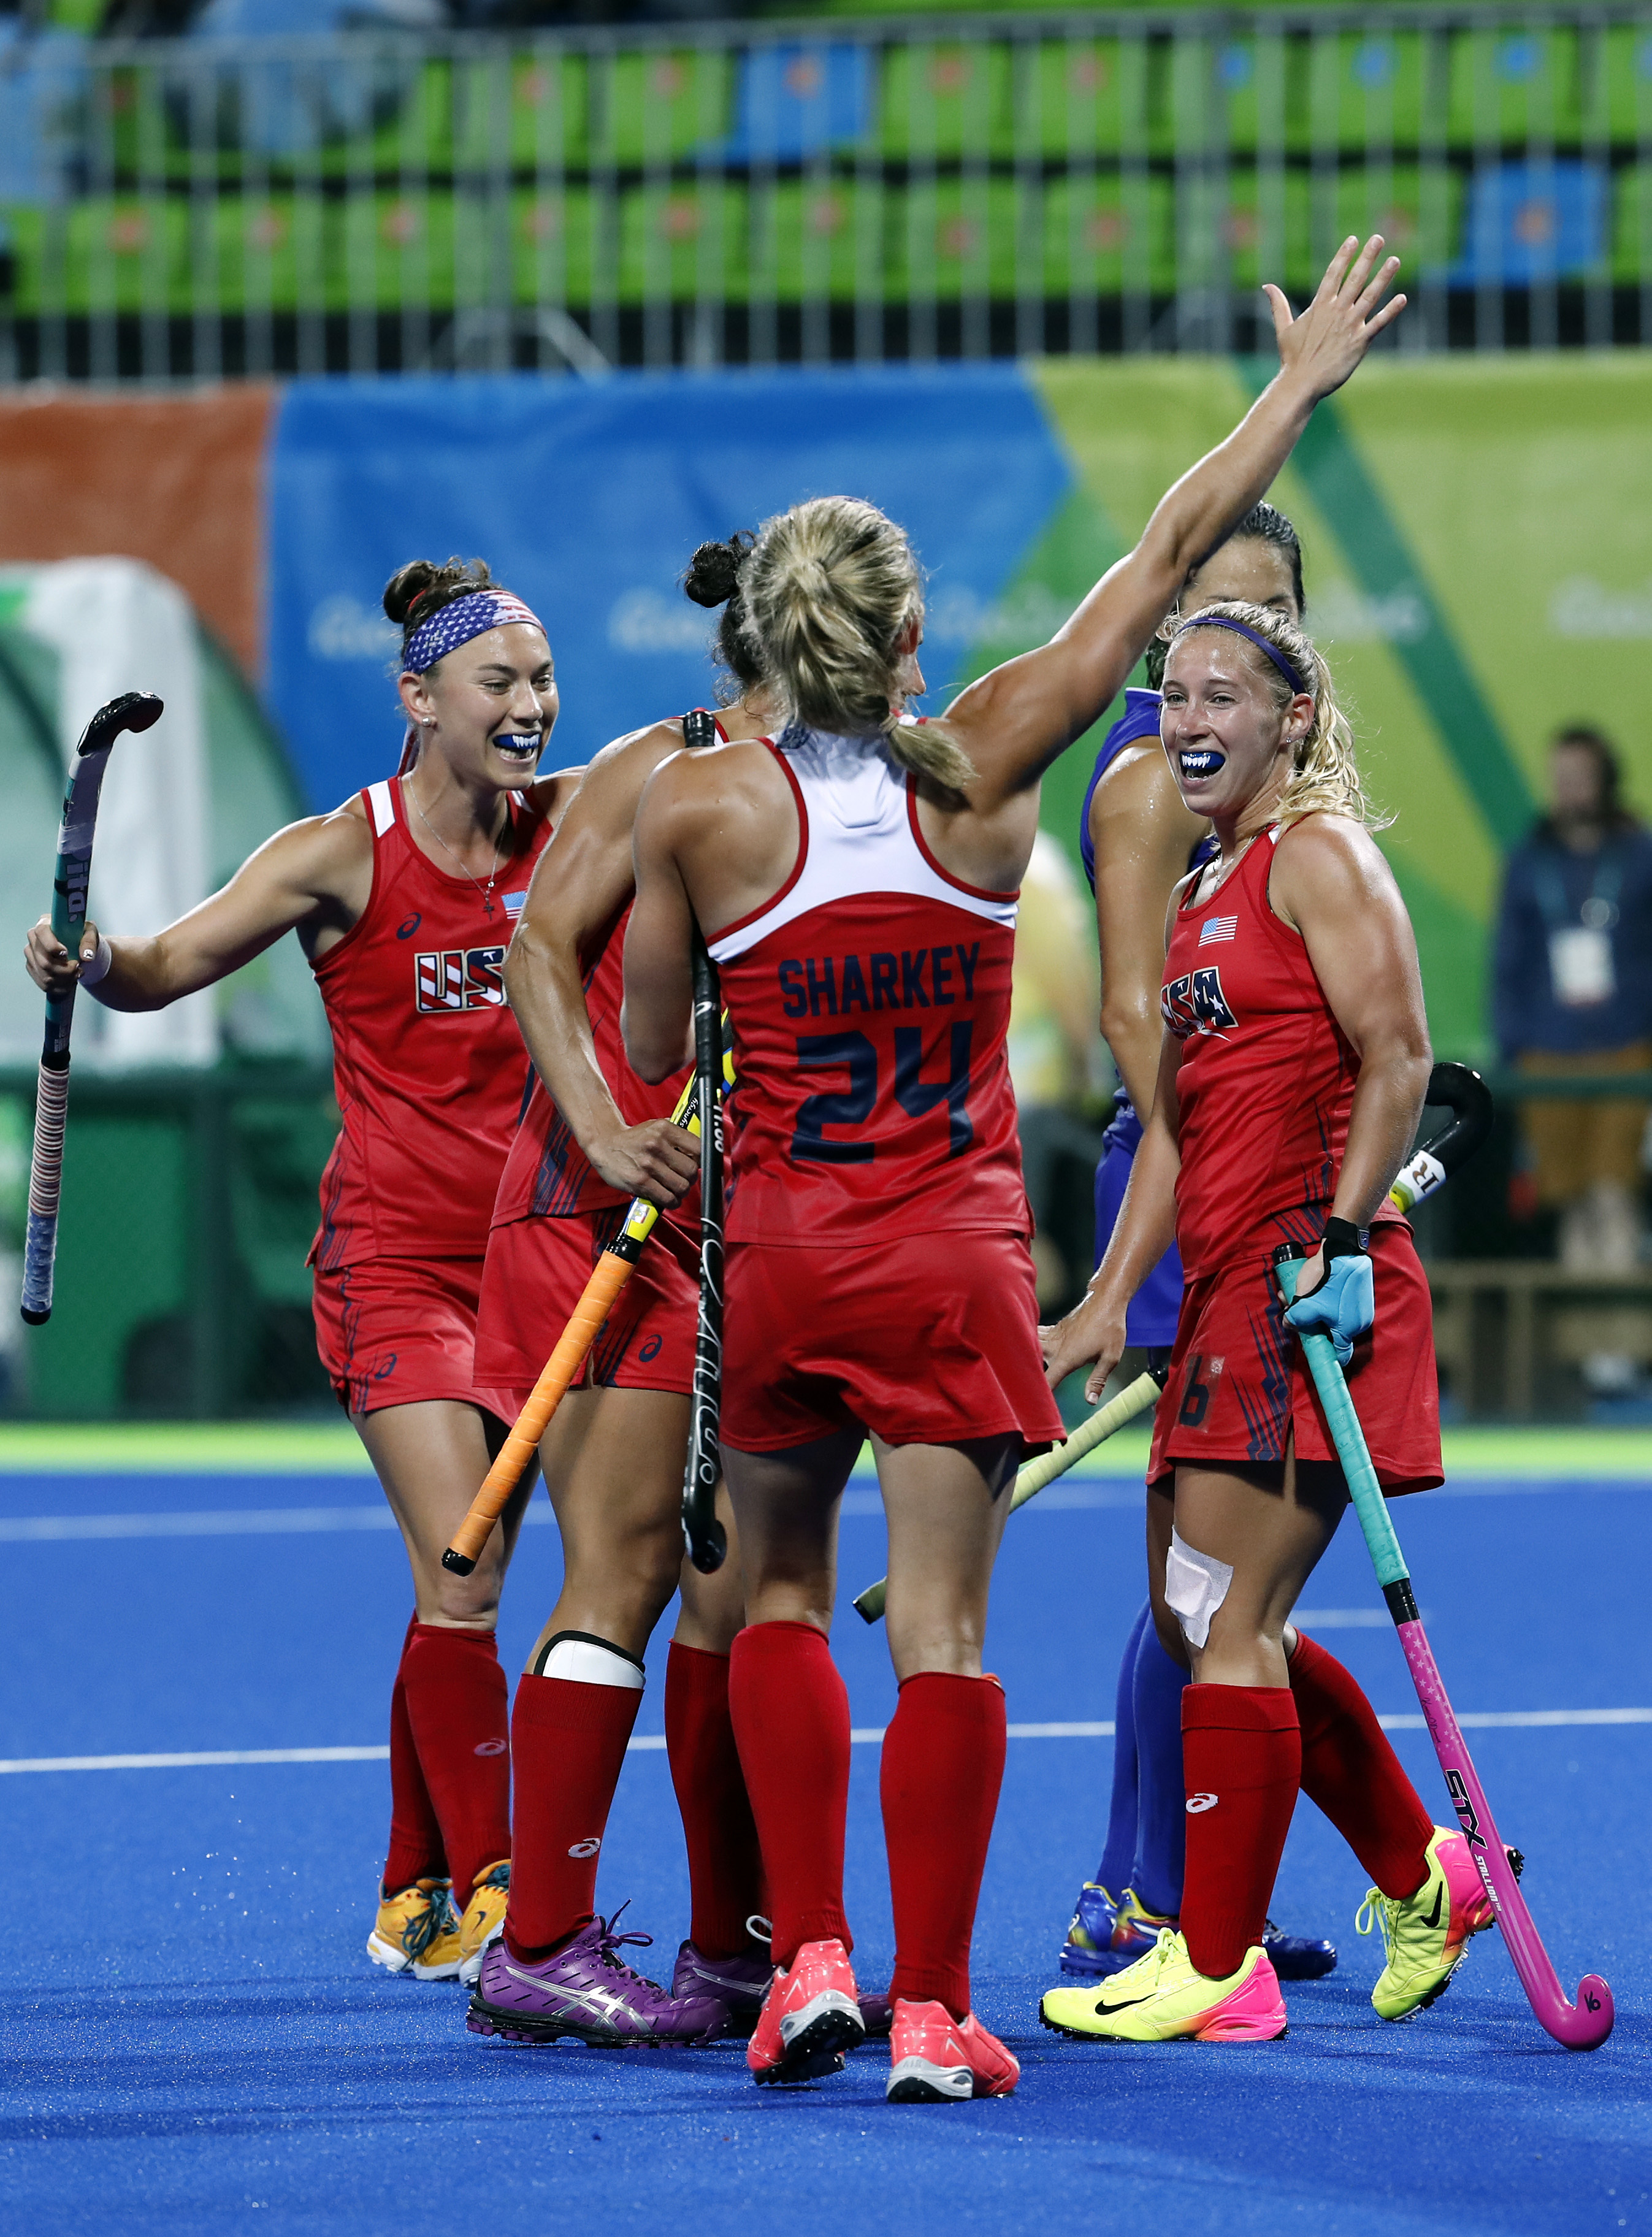 Players of United States celebrates after scoring against Japan during a women's field hockey match at the 2016 Summer Olympics in Rio de Janeiro, Brazil, Wednesday, Aug. 10, 2016. (AP Photo/Dario Lopez-Mills)